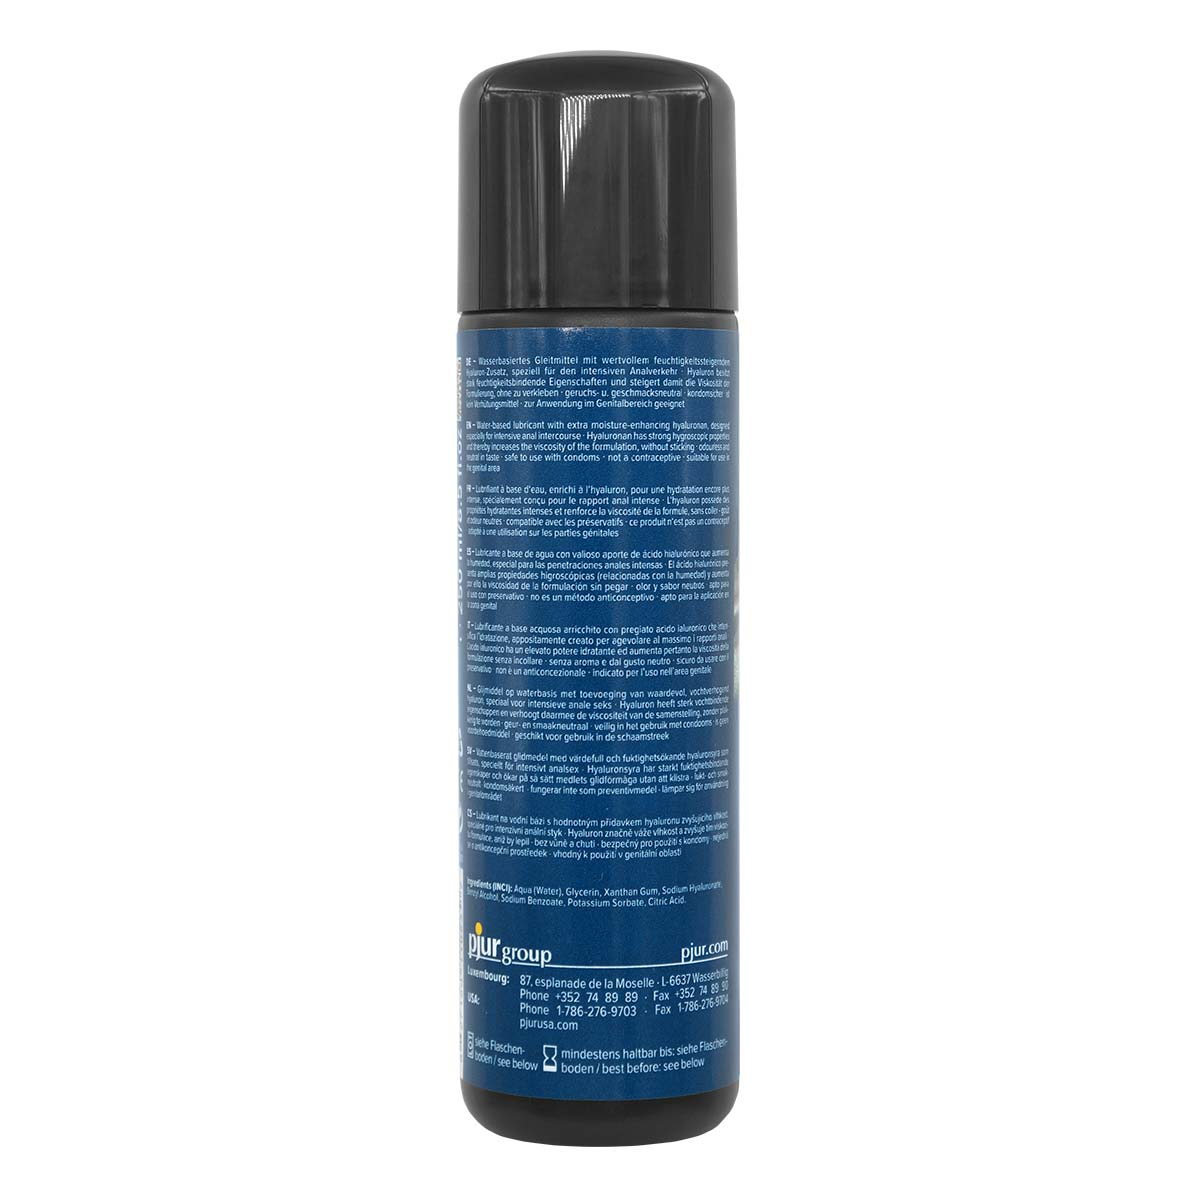 pjur BACK DOOR COMFORT Water Anal Glide 250ml Water-based Lubricant